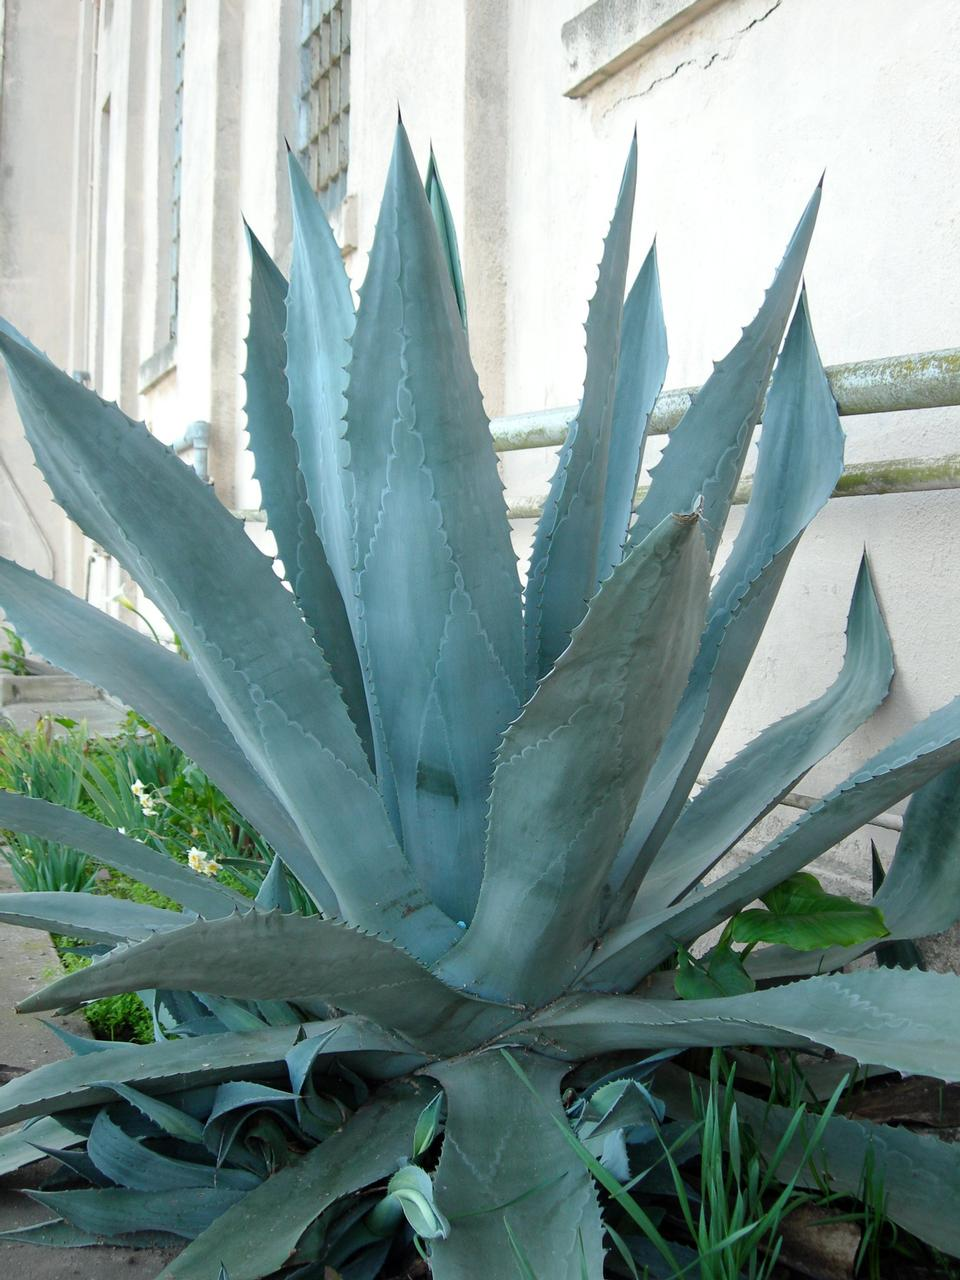 Free Century plant - Agave americana